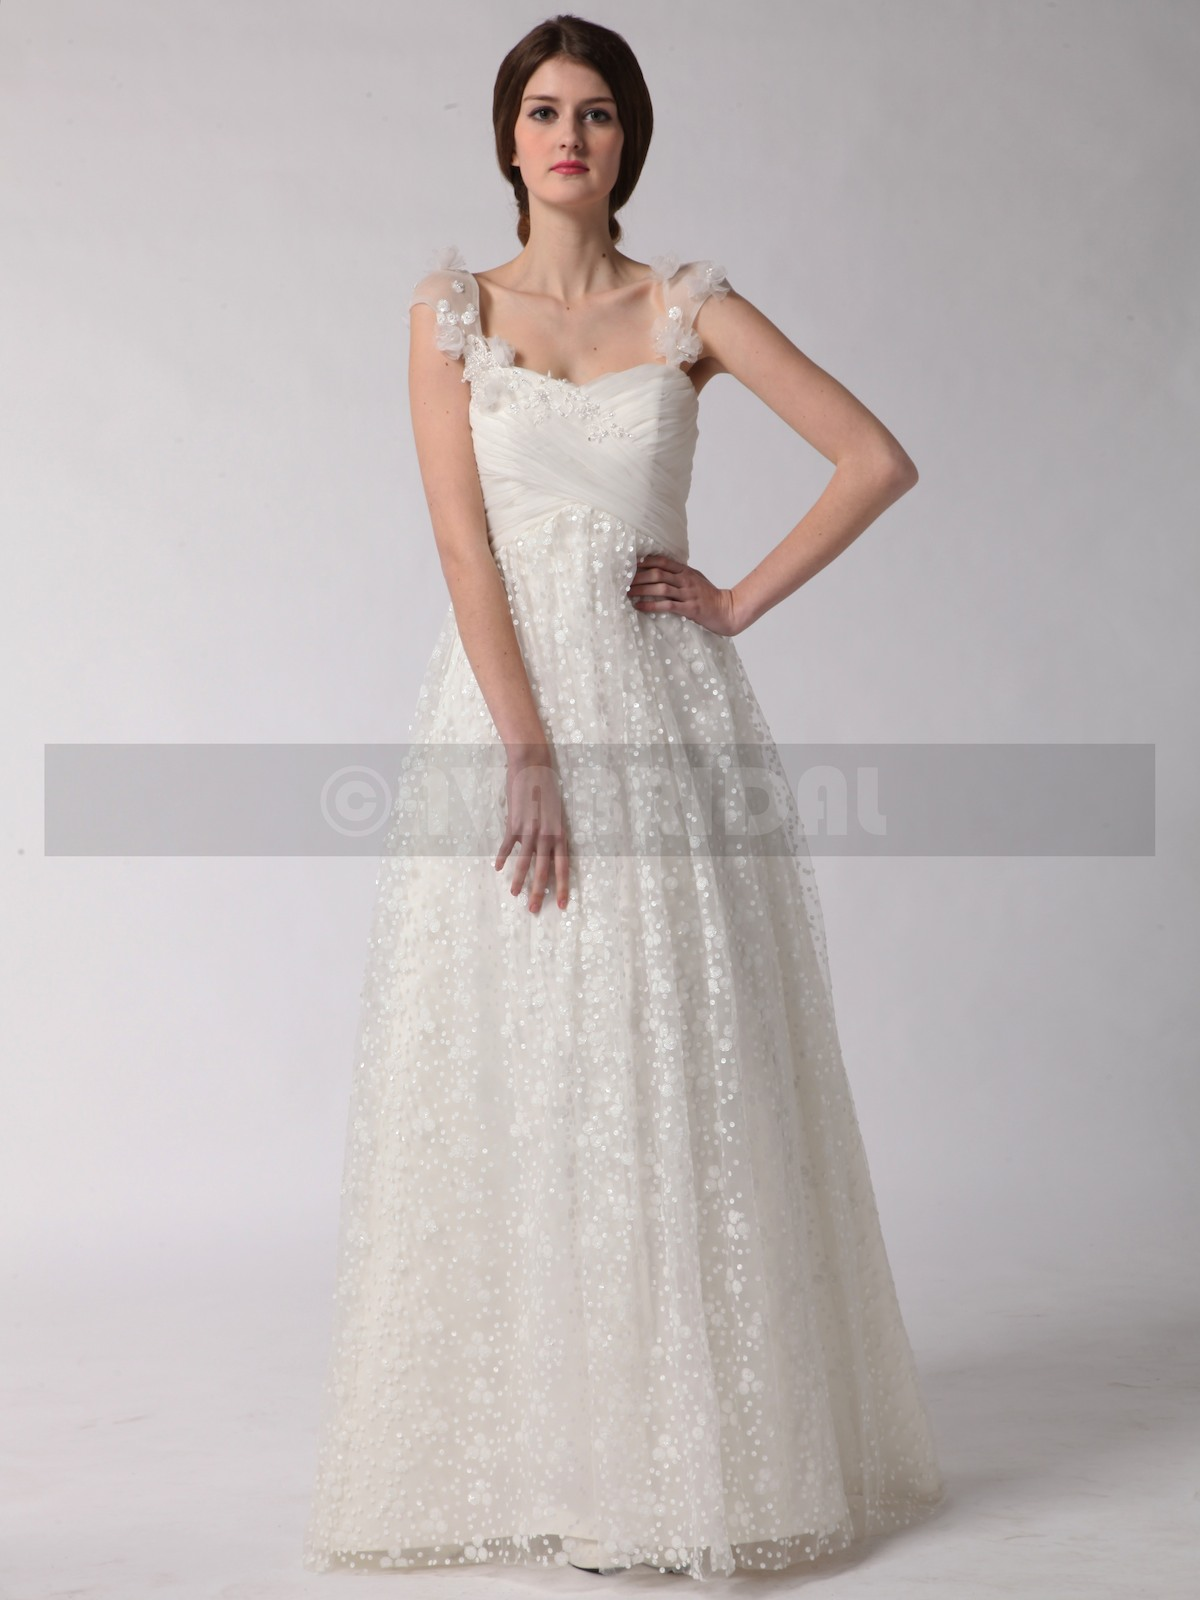 Lace Wedding Dress Rosemary Ava Bridal